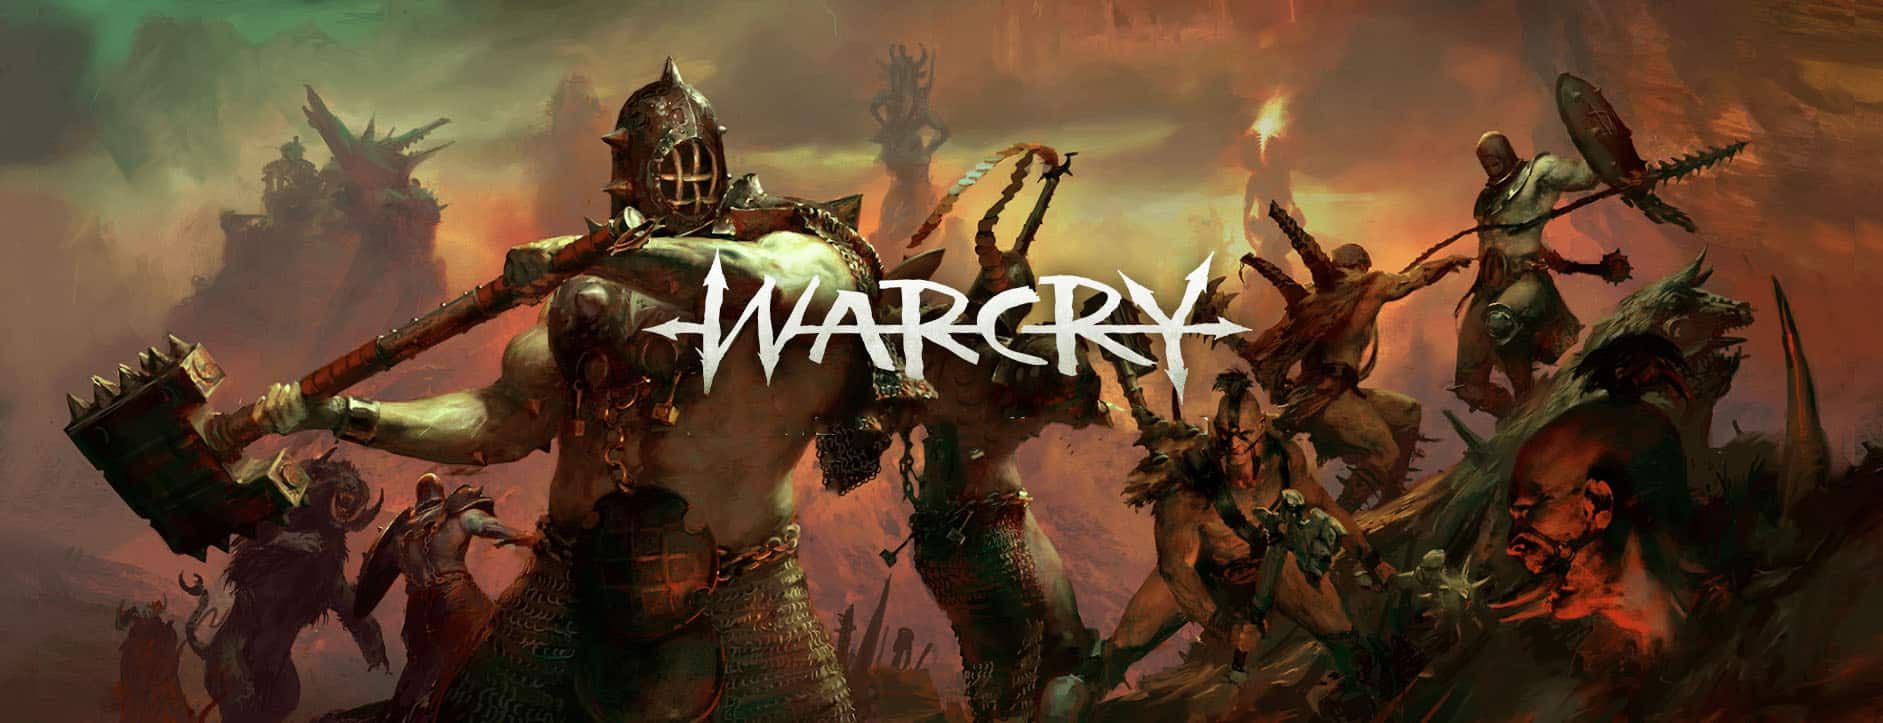 Warcry Warhammer Review (Warbands, Factions, Models, and Rules)